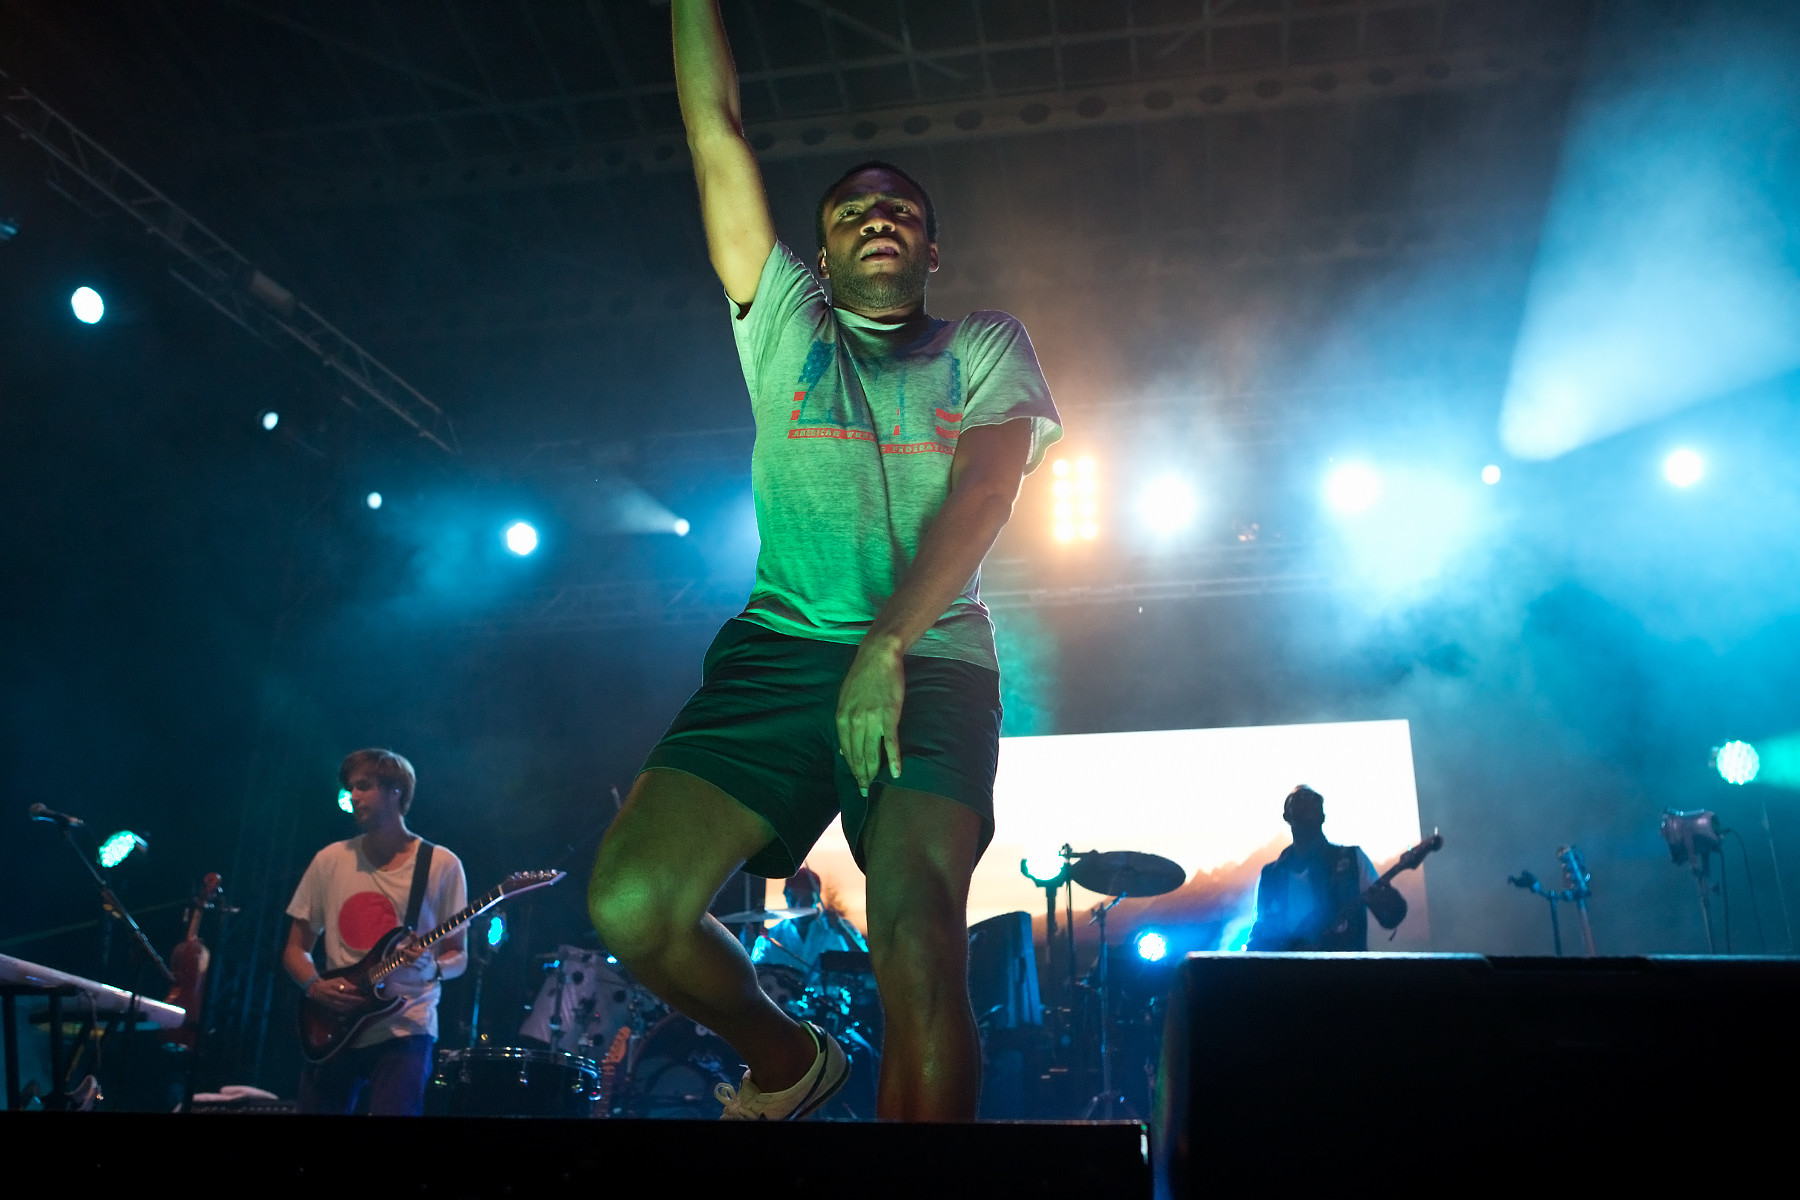 Childish Gambino @ Lollapalooza 2012